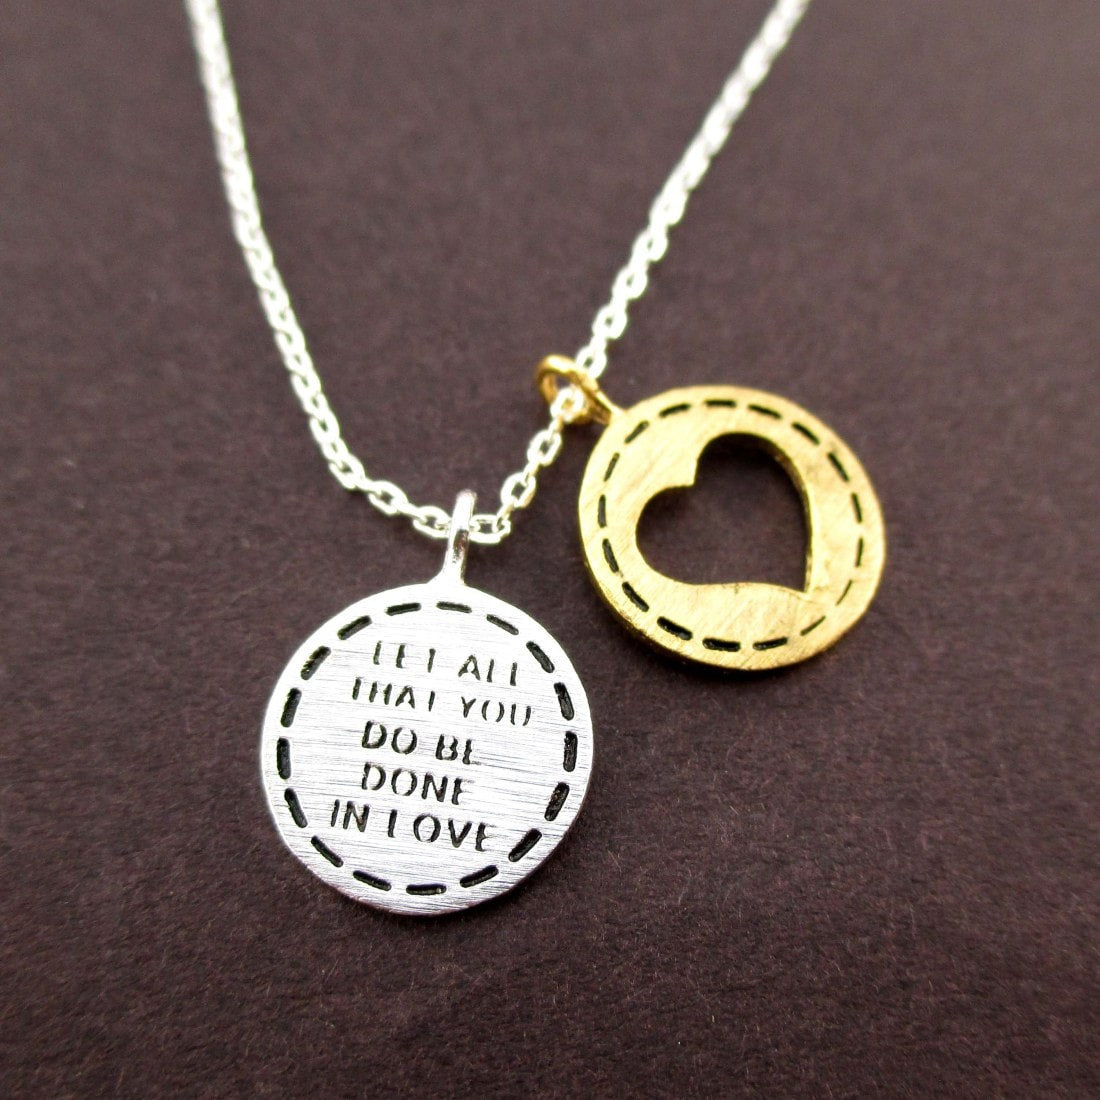 Let All You Do Be Done in Love Motivational Quote Necklace in Silver